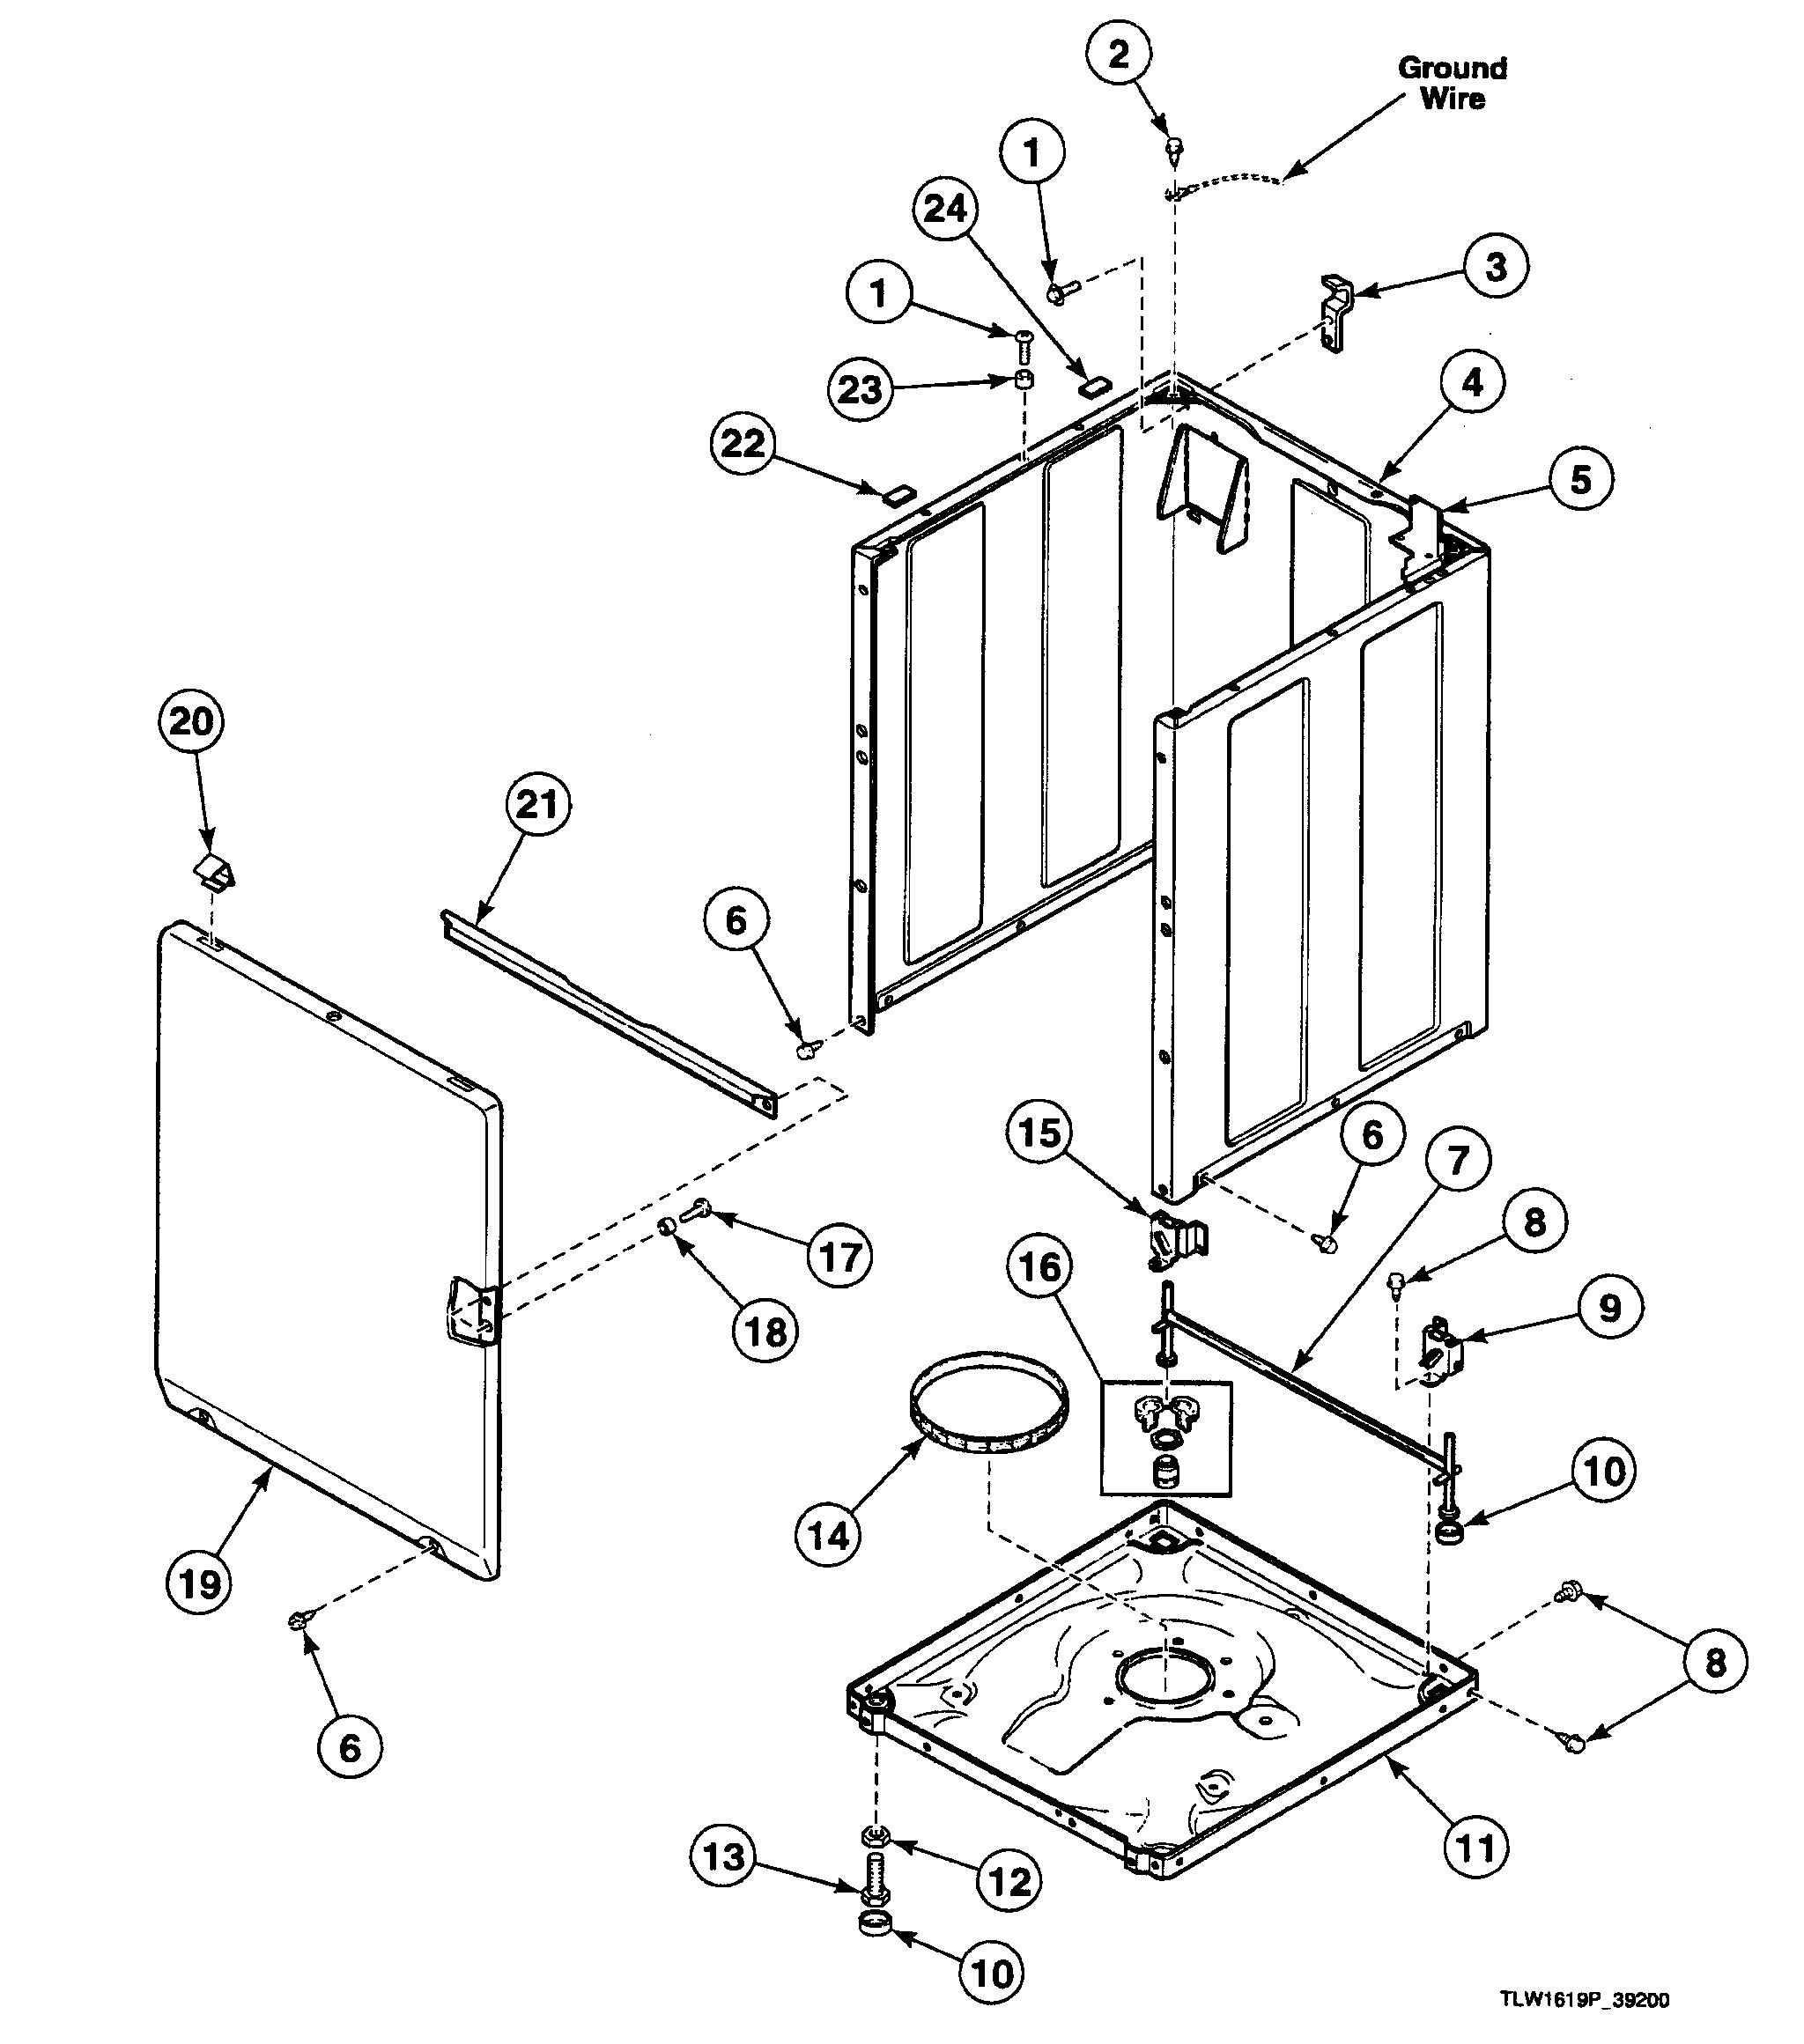 Drill Press Parts Diagram